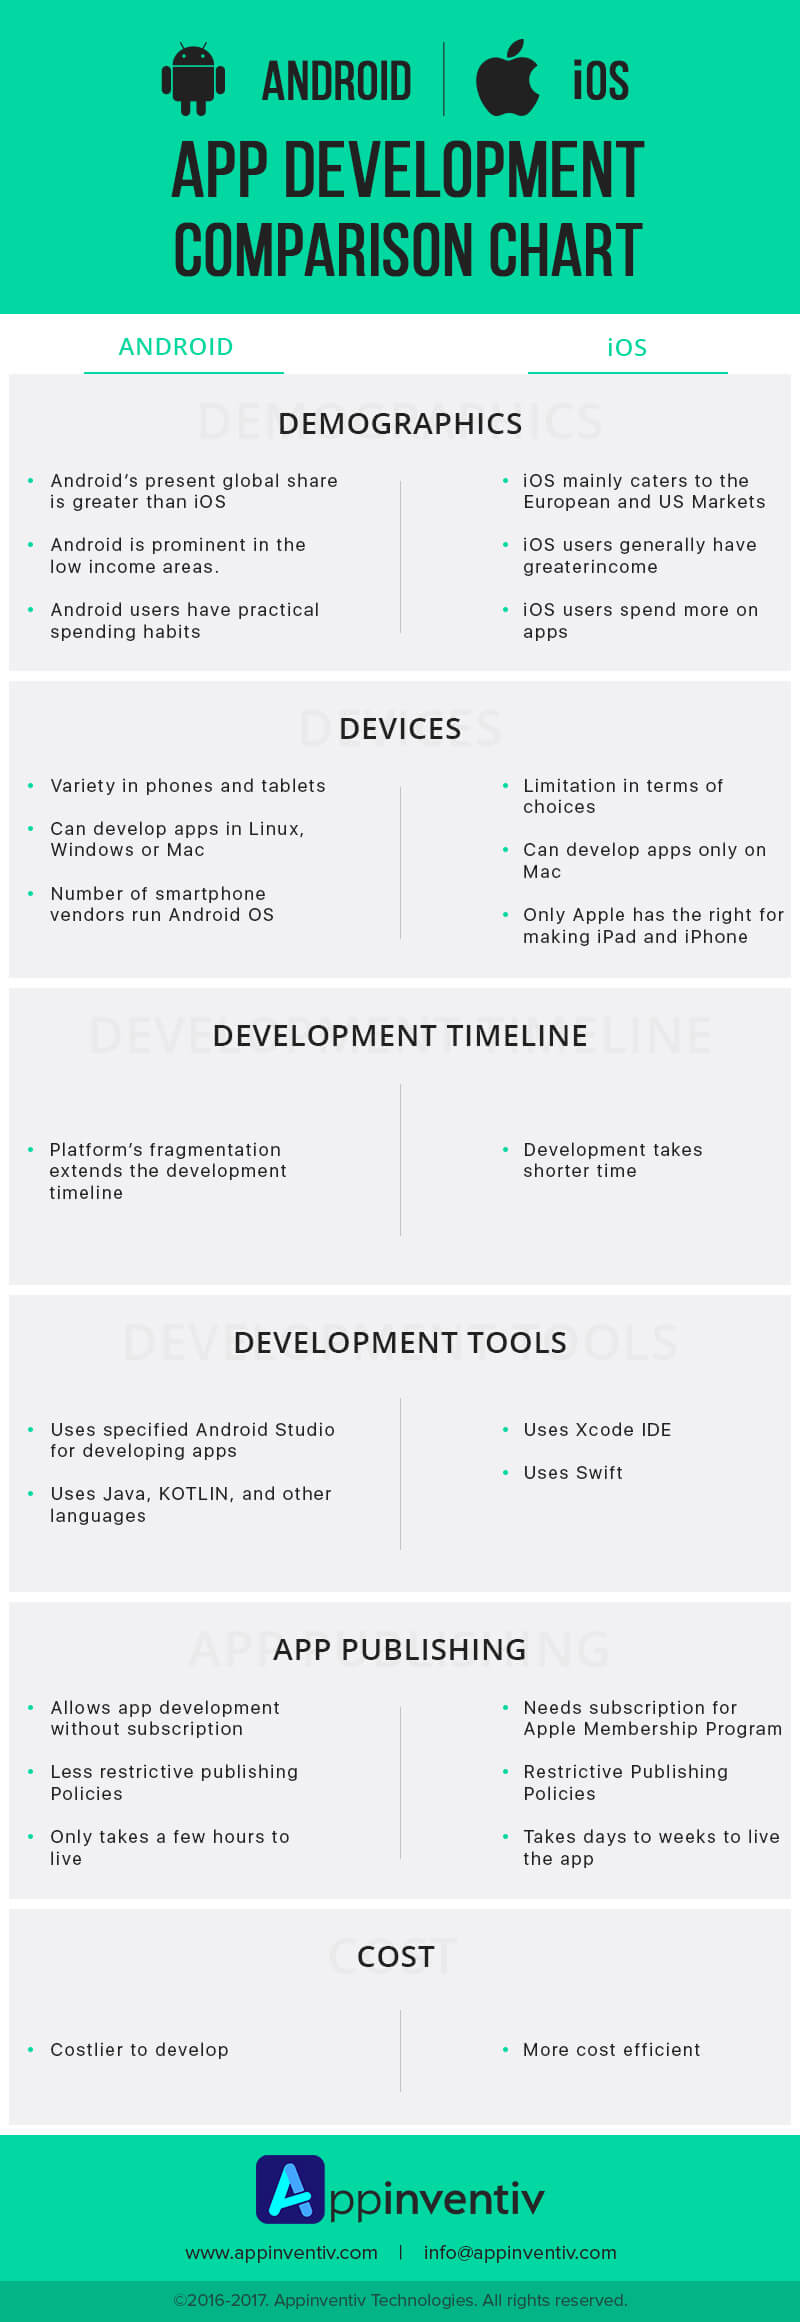 Android vs iOS App Comparison Chart Infographic